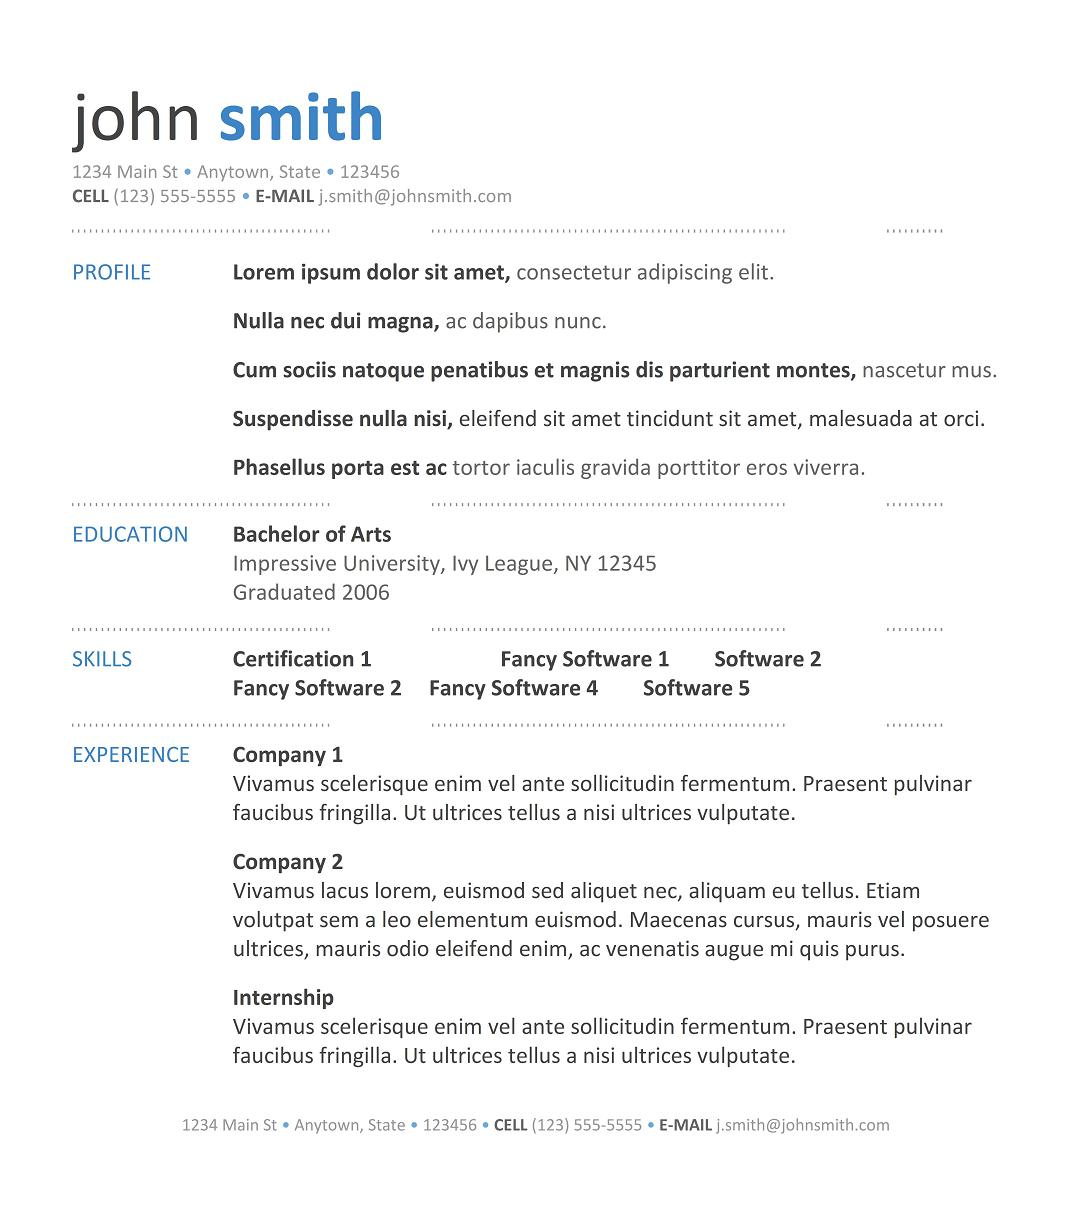 Professional Cv Resume Templates: 7 Samples Of How To Make A Professional Resume Examples